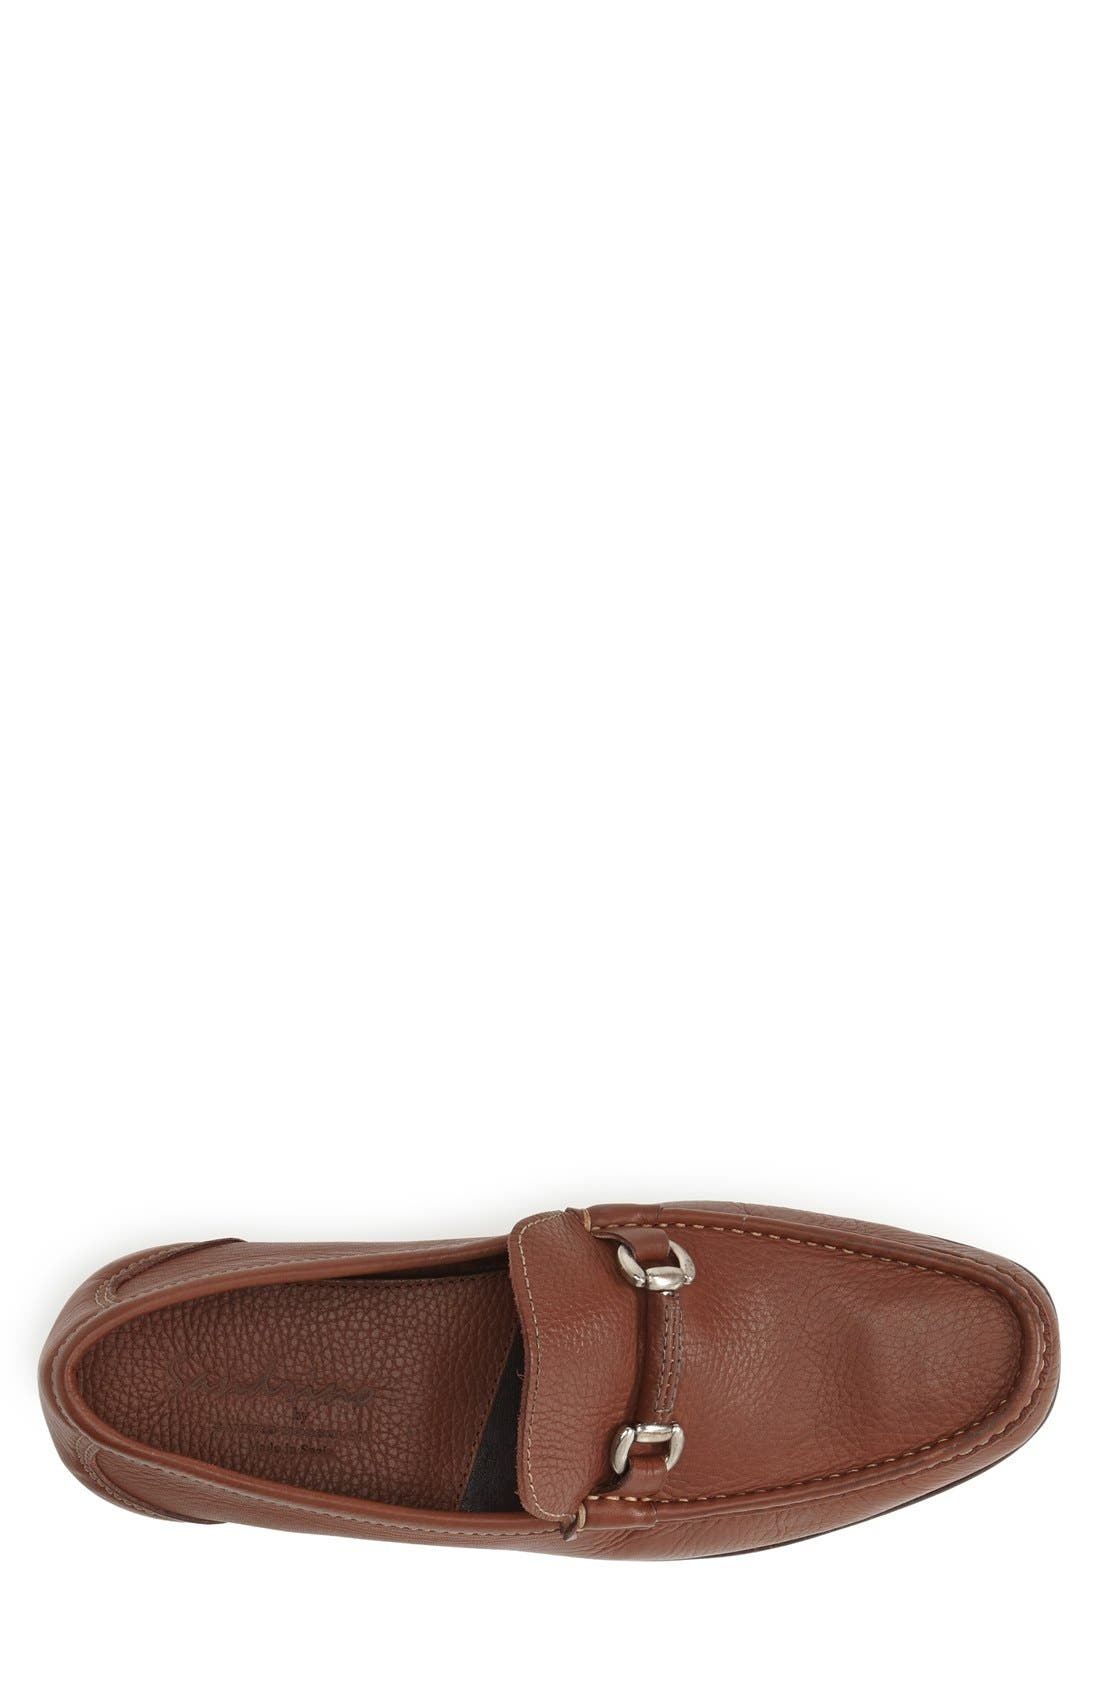 'San Remo' Leather Bit Loafer,                             Alternate thumbnail 3, color,                             Brown